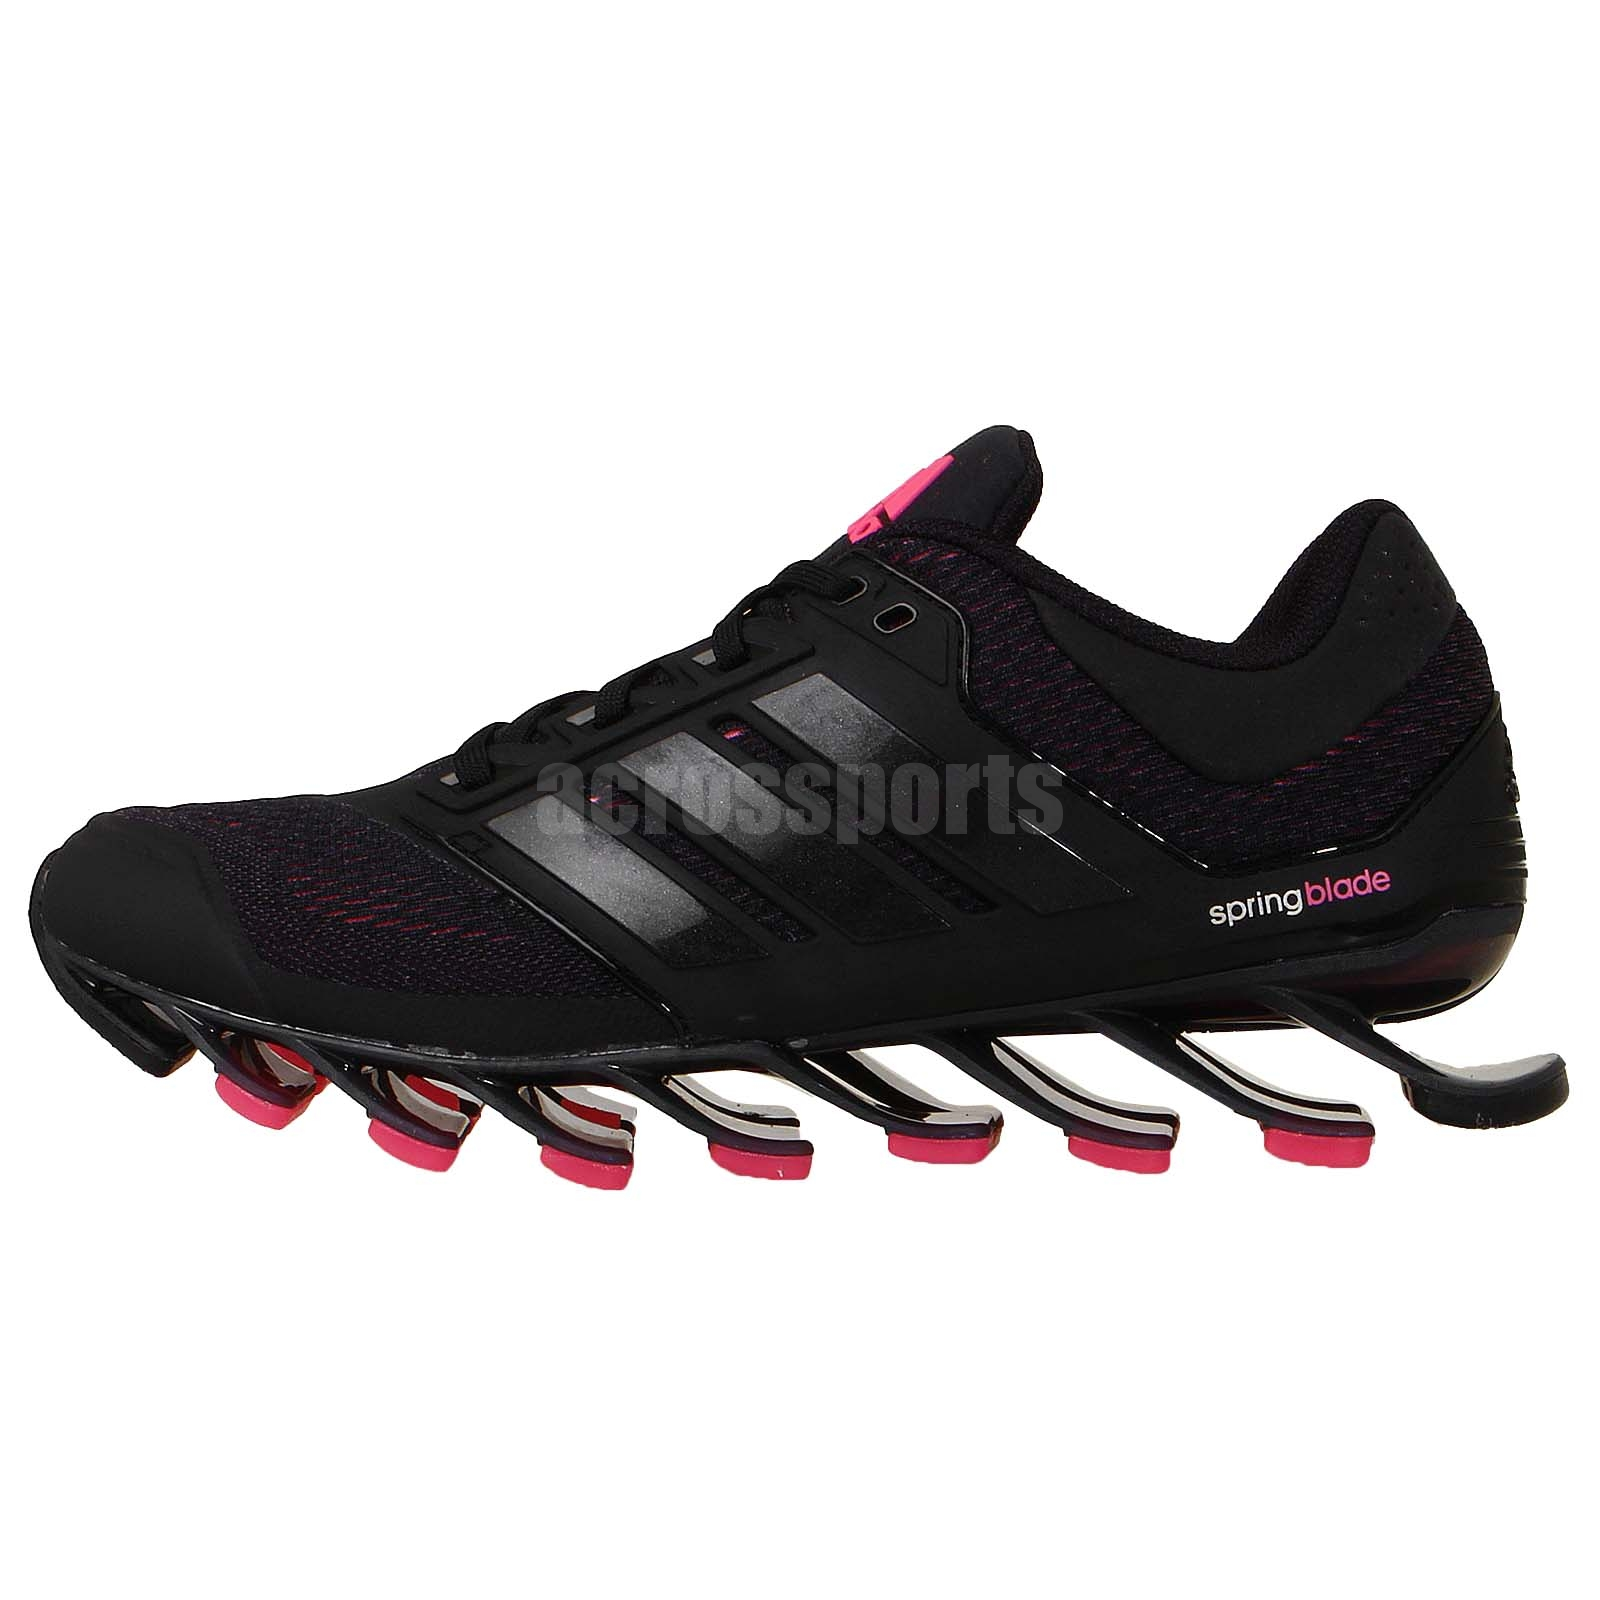 adidas springblade drive w black pink 2014 womens running